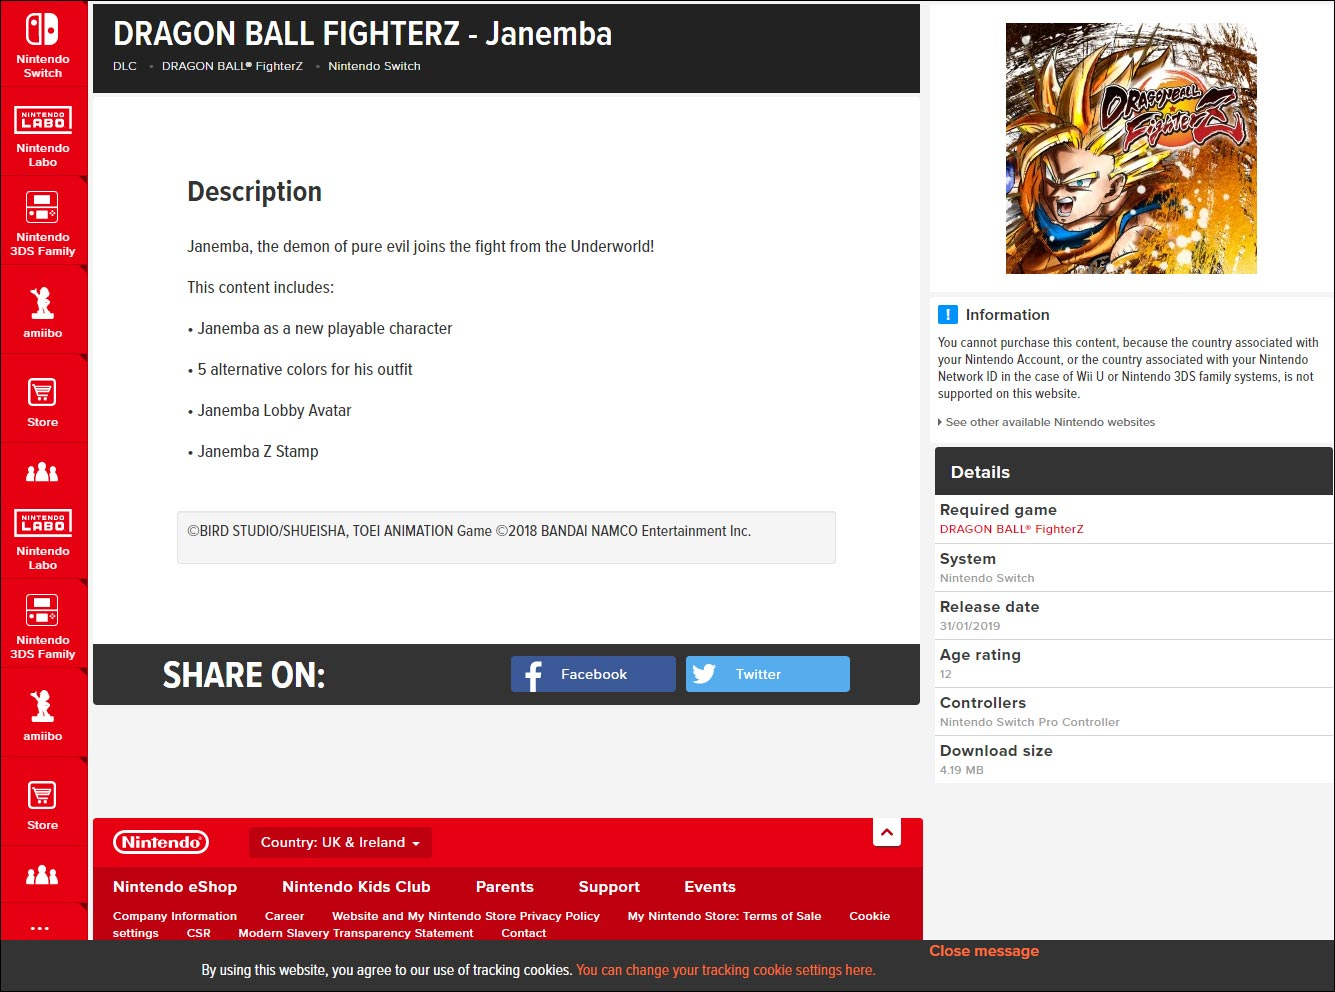 Janemba Nintendo description 1 out of 1 image gallery